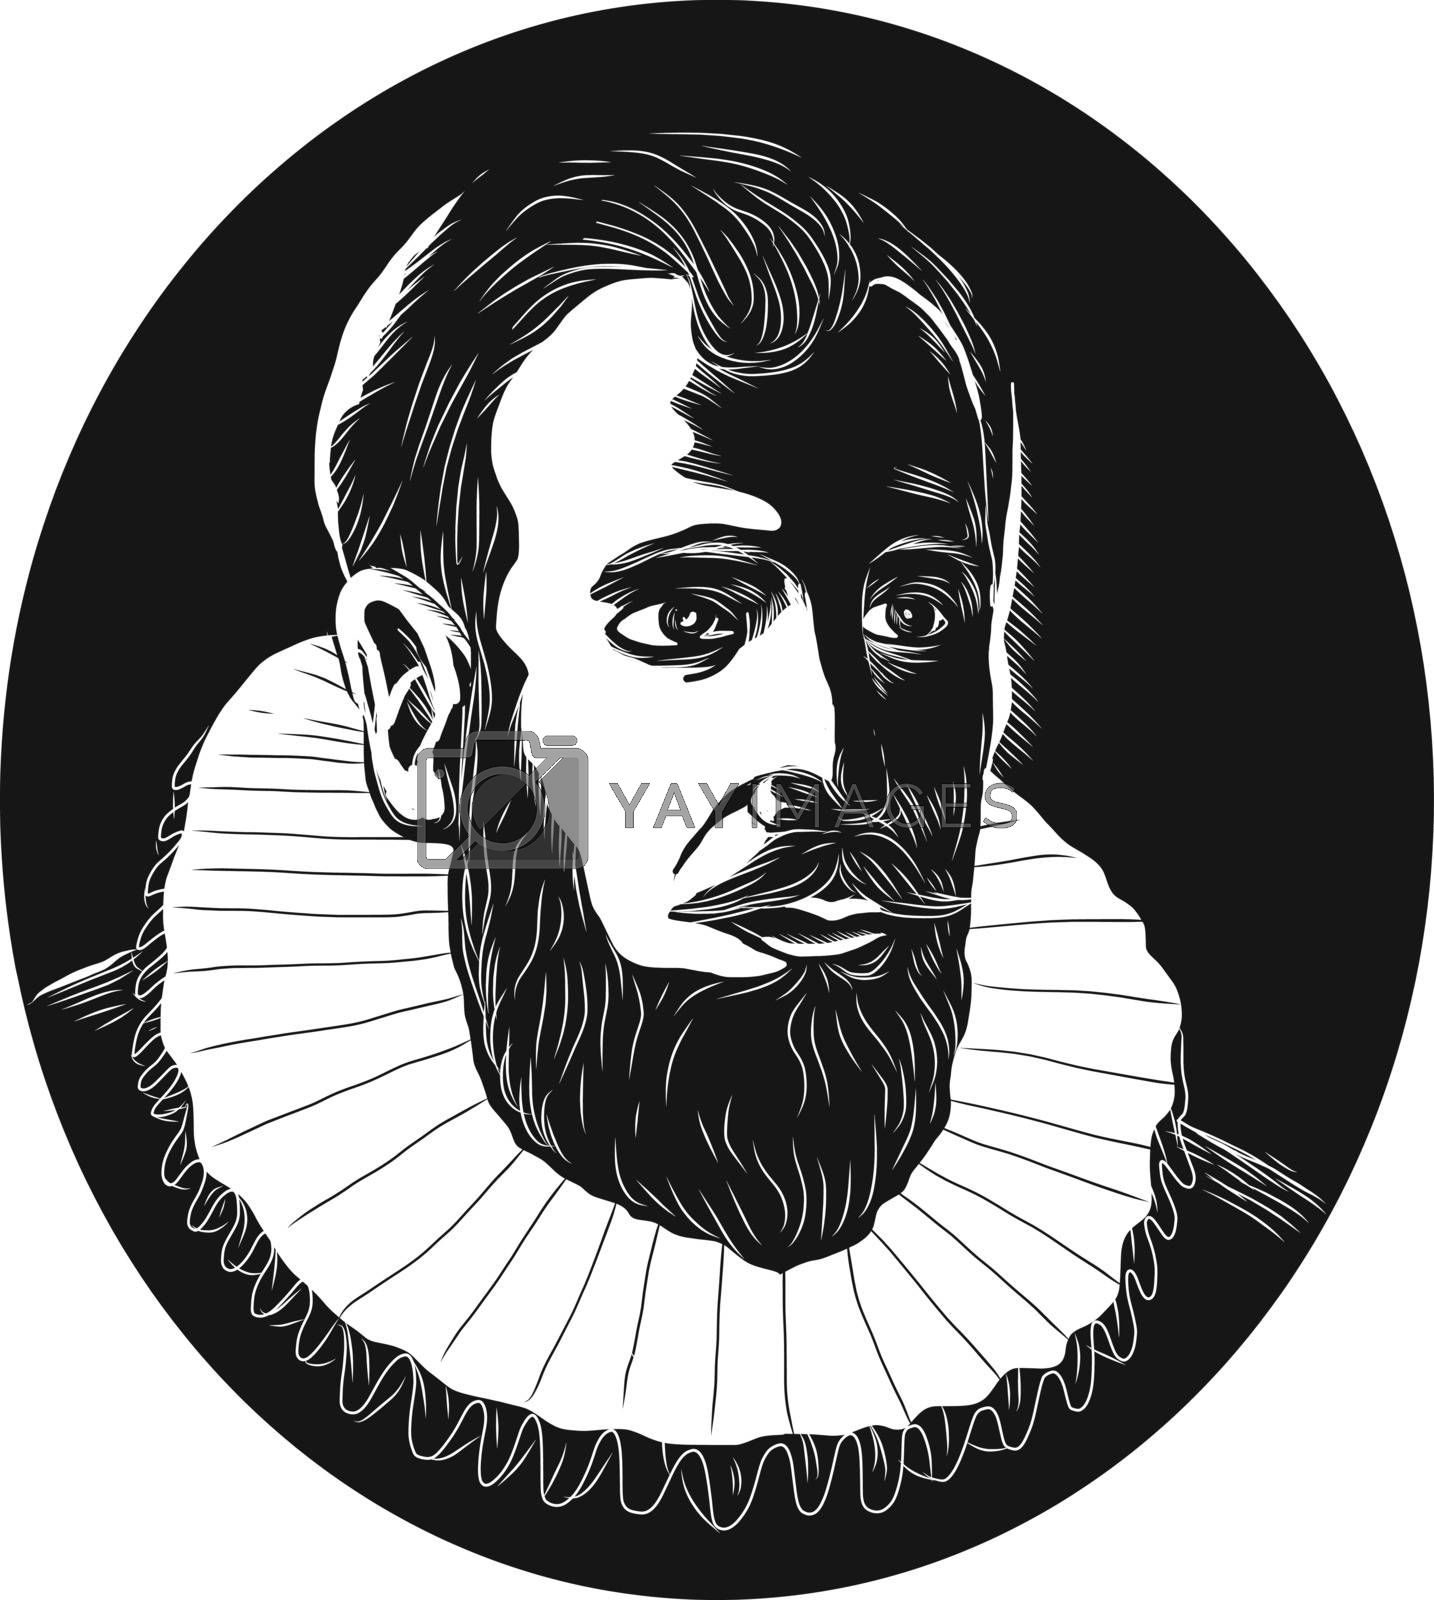 Illustration of Henry Hudson, English sea explorer and navigator in the 17th century who explored the Hudson River viewed from front set inside oval shape done in retro woodcut style.